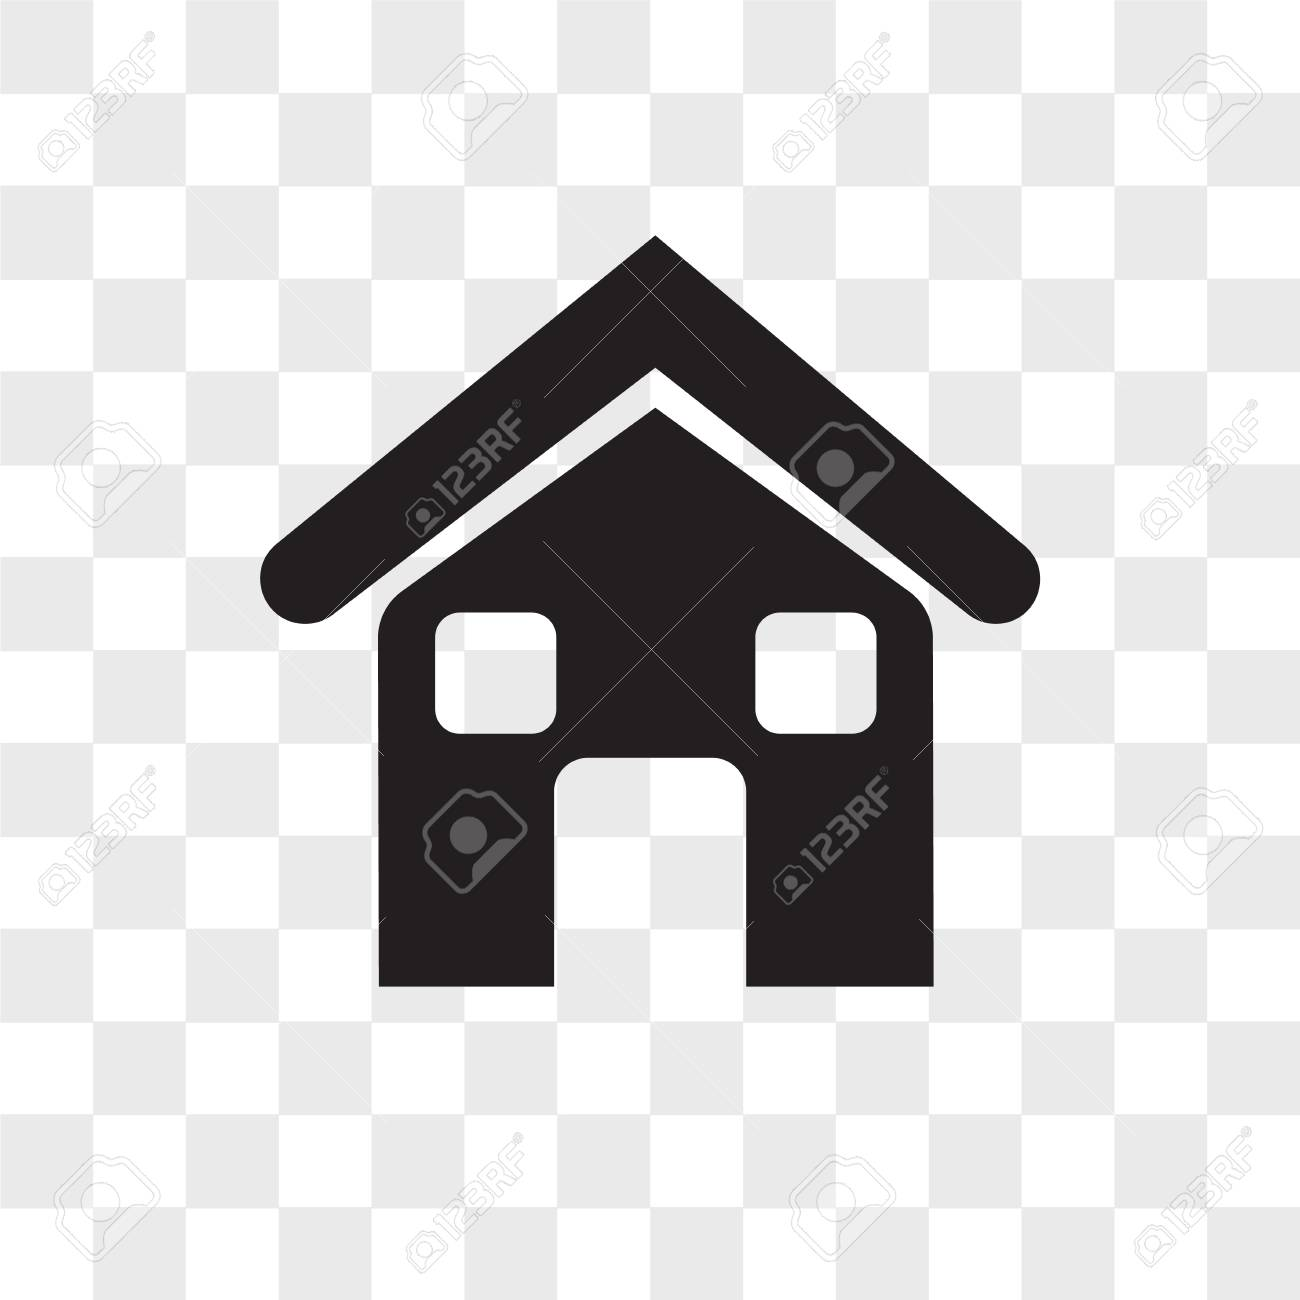 Home Vector Icon Isolated On Transparent Background Home Logo Royalty Free Cliparts Vectors And Stock Illustration Image 108199694